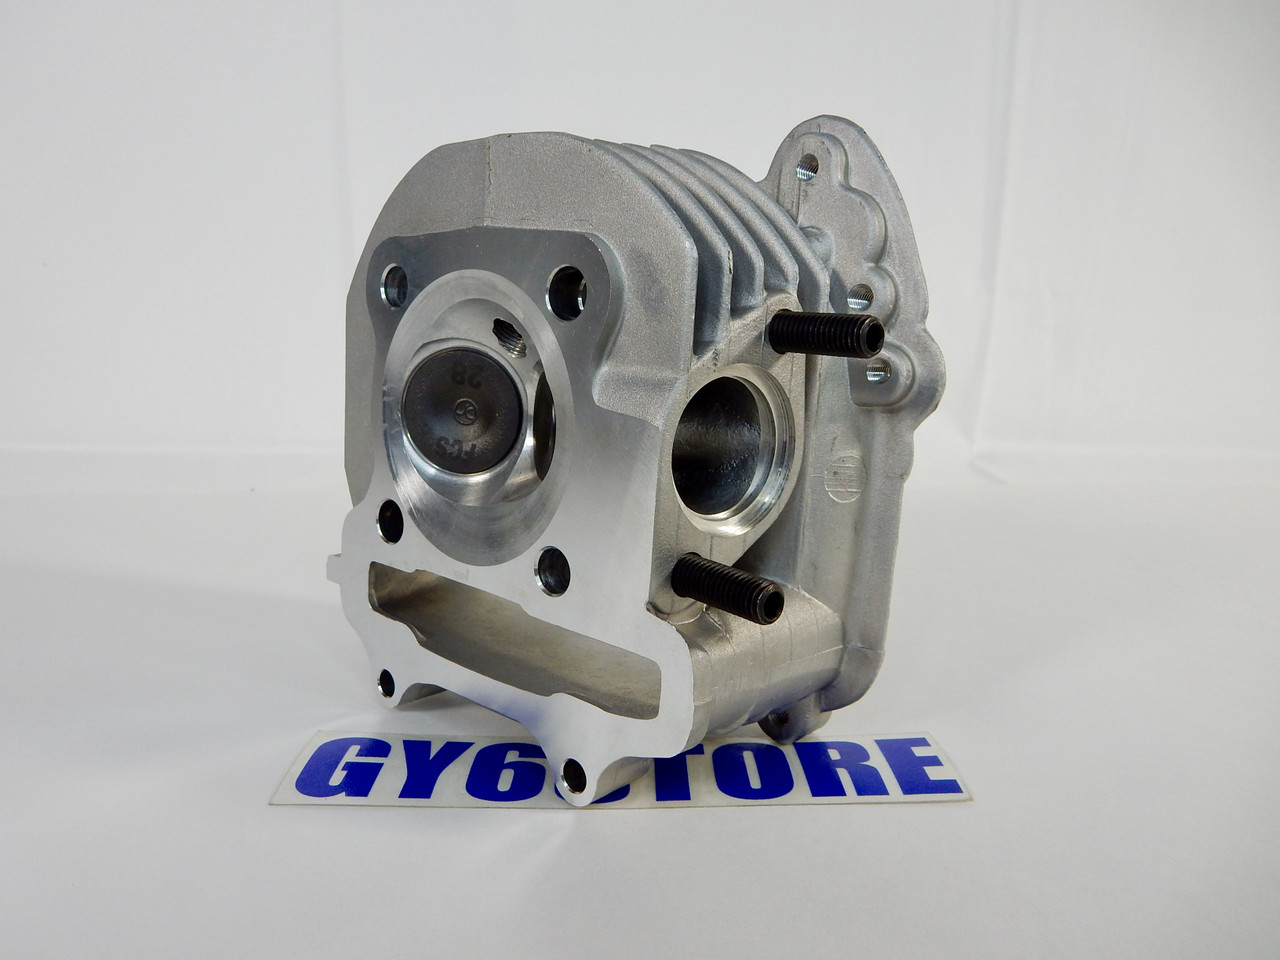 172cc RACING CYLINDER HEAD GY6 *61mm BORE* 28/23 VALVES (54mm SPACING)